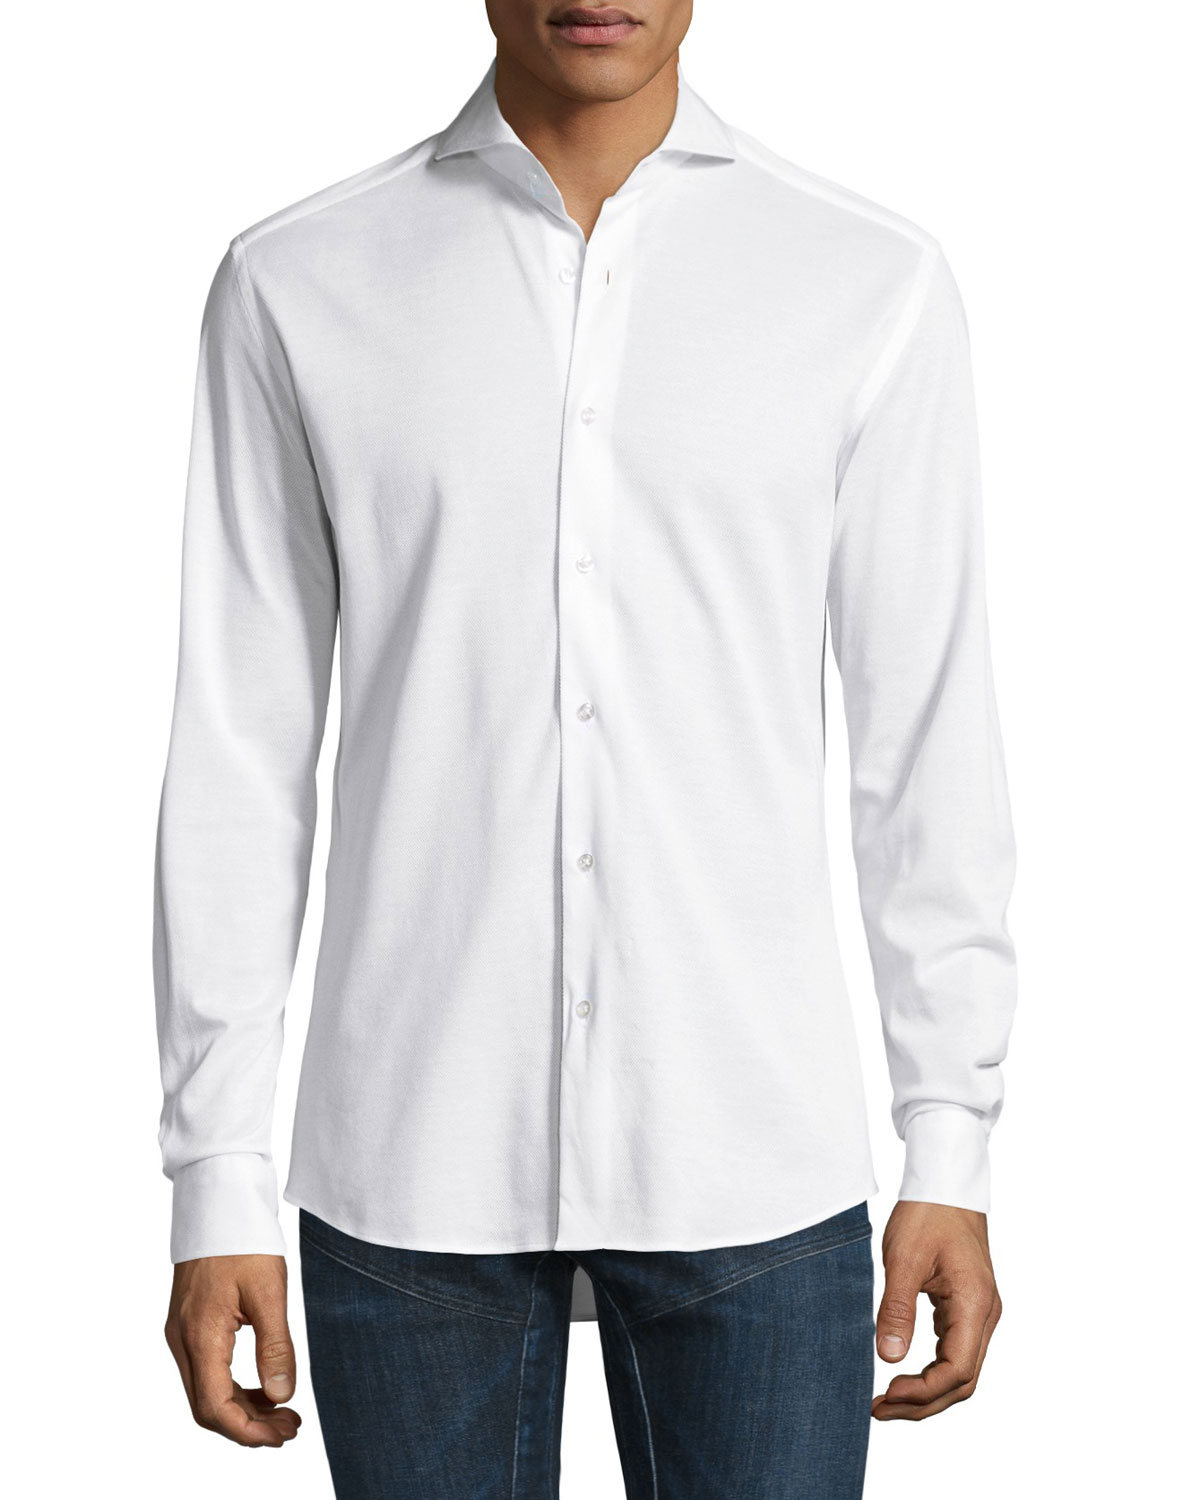 Knit Sport Shirt, White